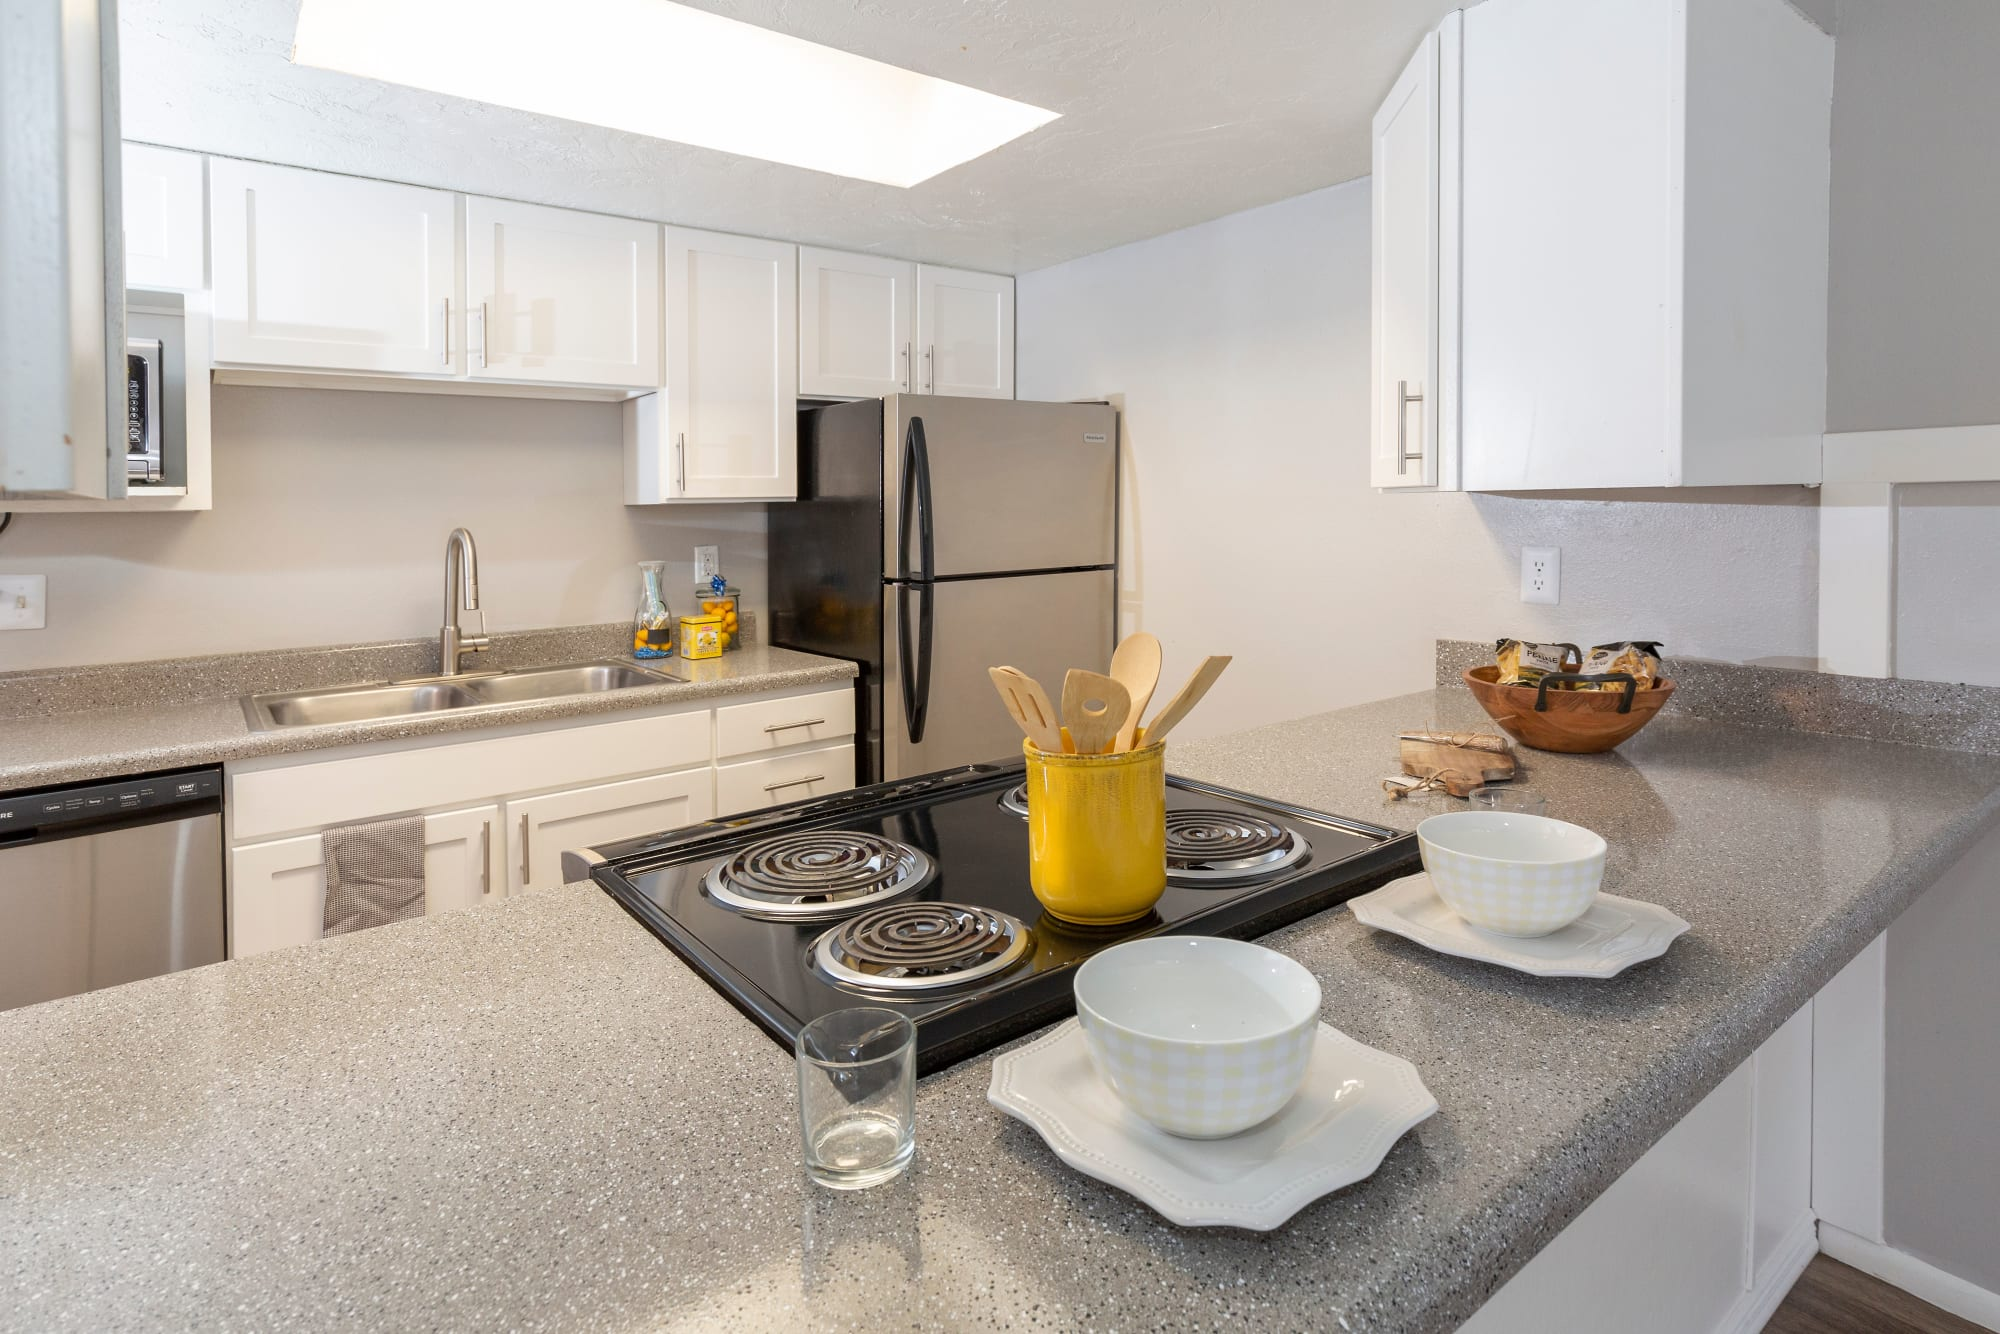 Renovated kitchen with white cabinets at Windgate Apartments in Bountiful, Utah